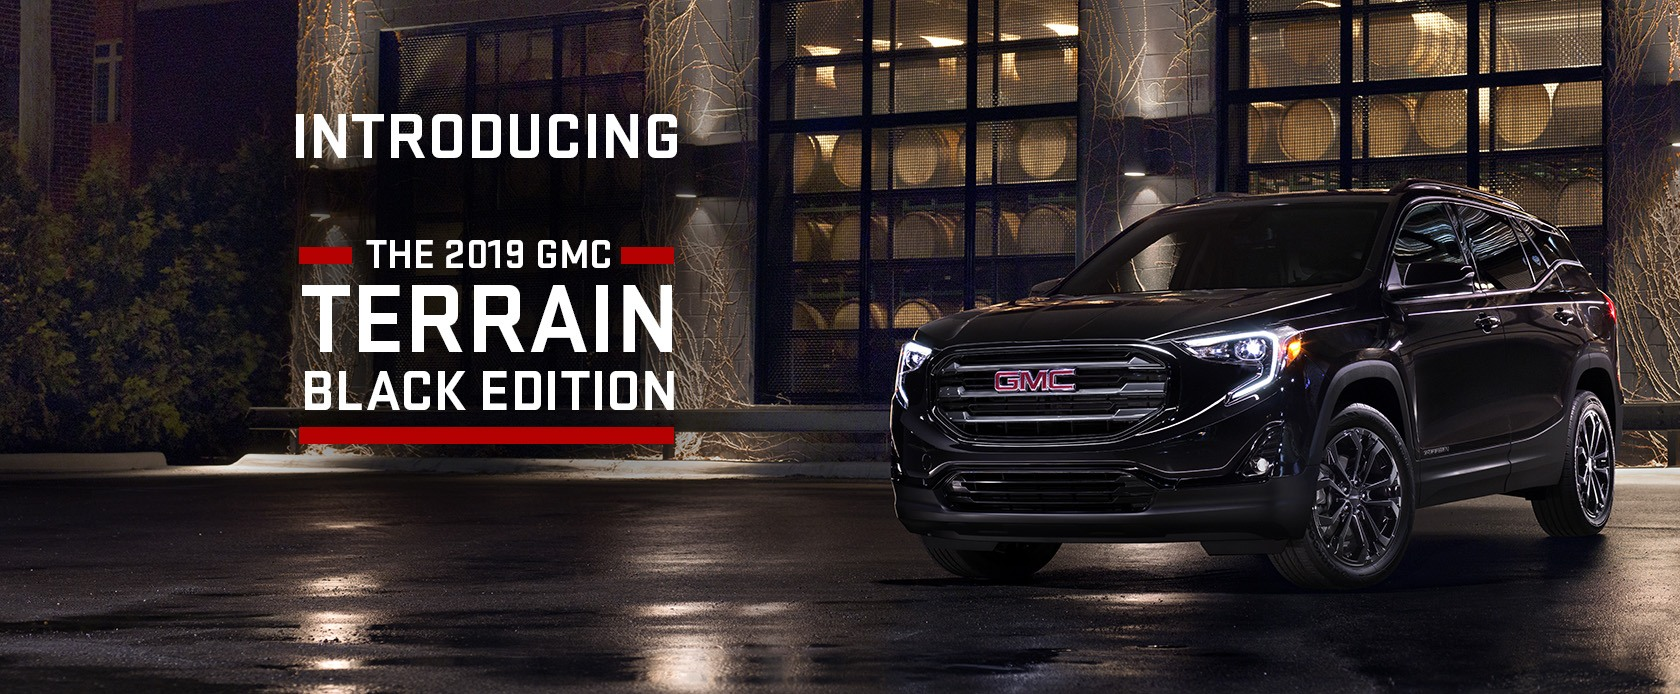 2019 Gmc Terrain Black Edition Eagle Ridge Gm